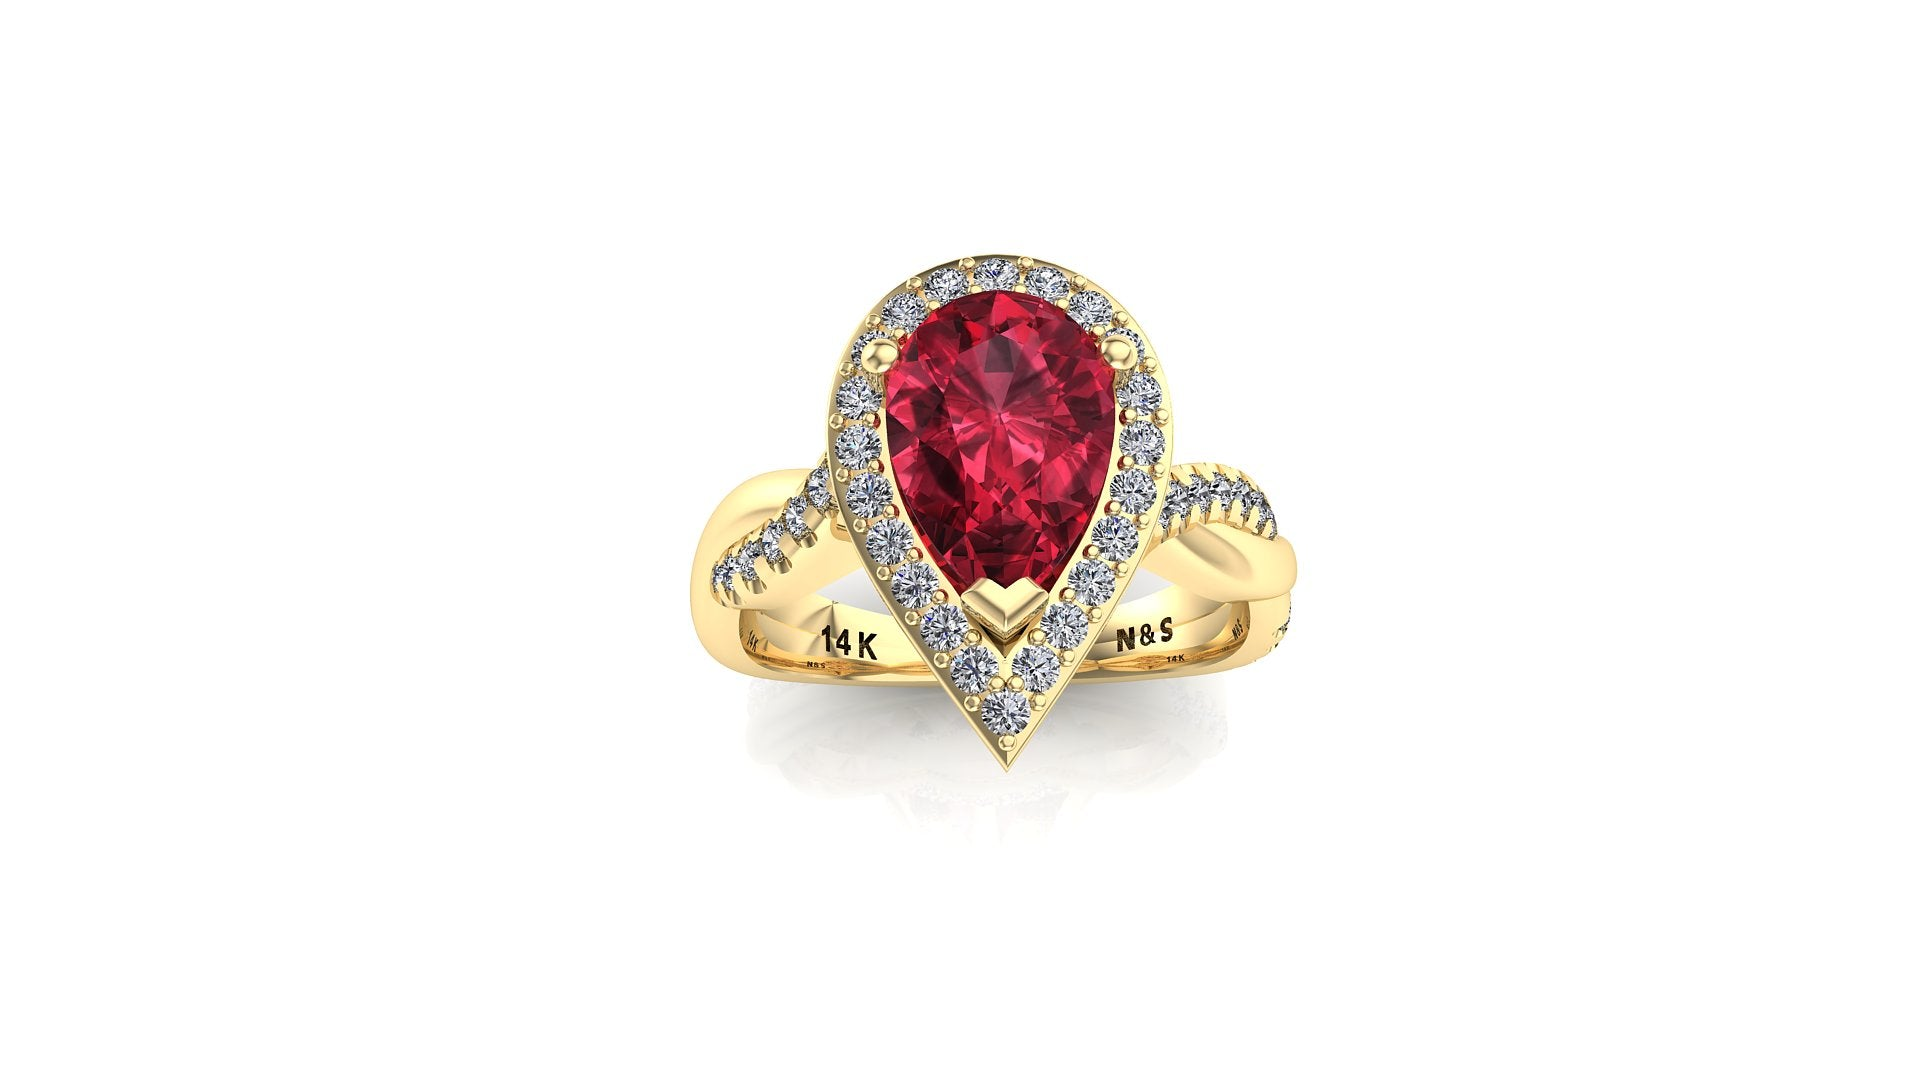 9x6mm (1.30ct) Single Diamond Twist Pear Cut Garnet Diamond Halo 14K Gold Ring BSAQ011